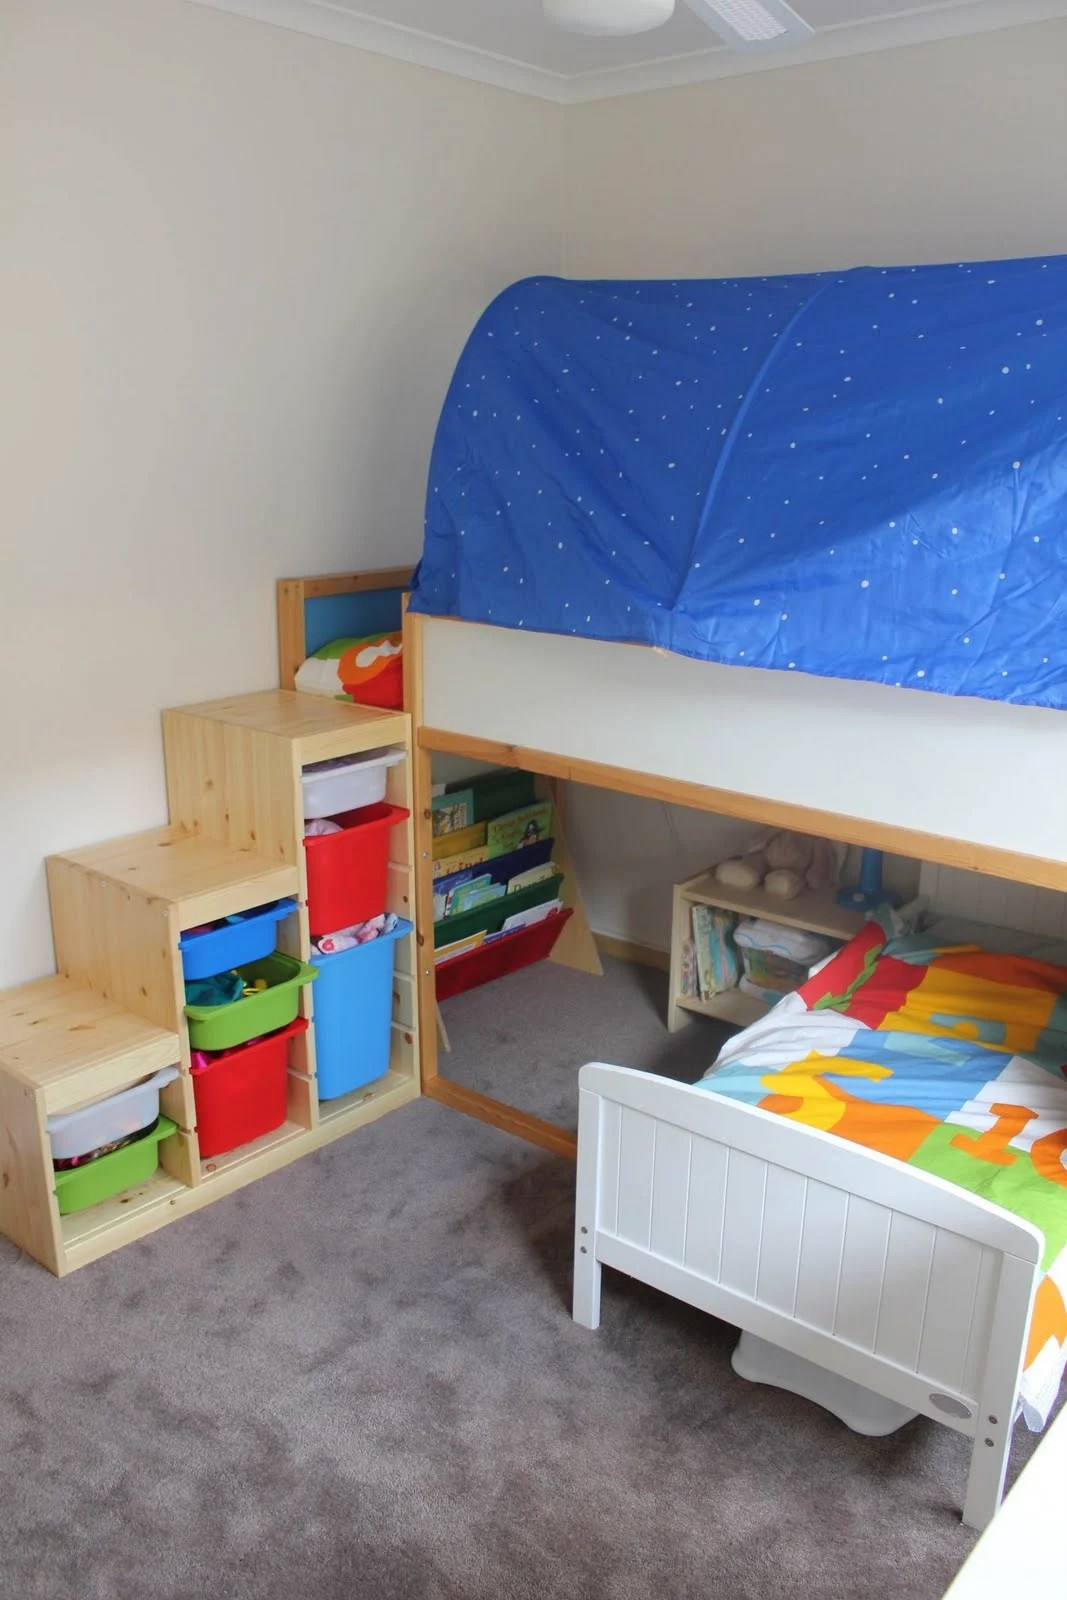 We Bought A Trofast Storage Unit As A Replacement For The Stairs. It Worked  Great! They Could Both Climb Up And Down Into The Bed But To Make It Safer  We ...